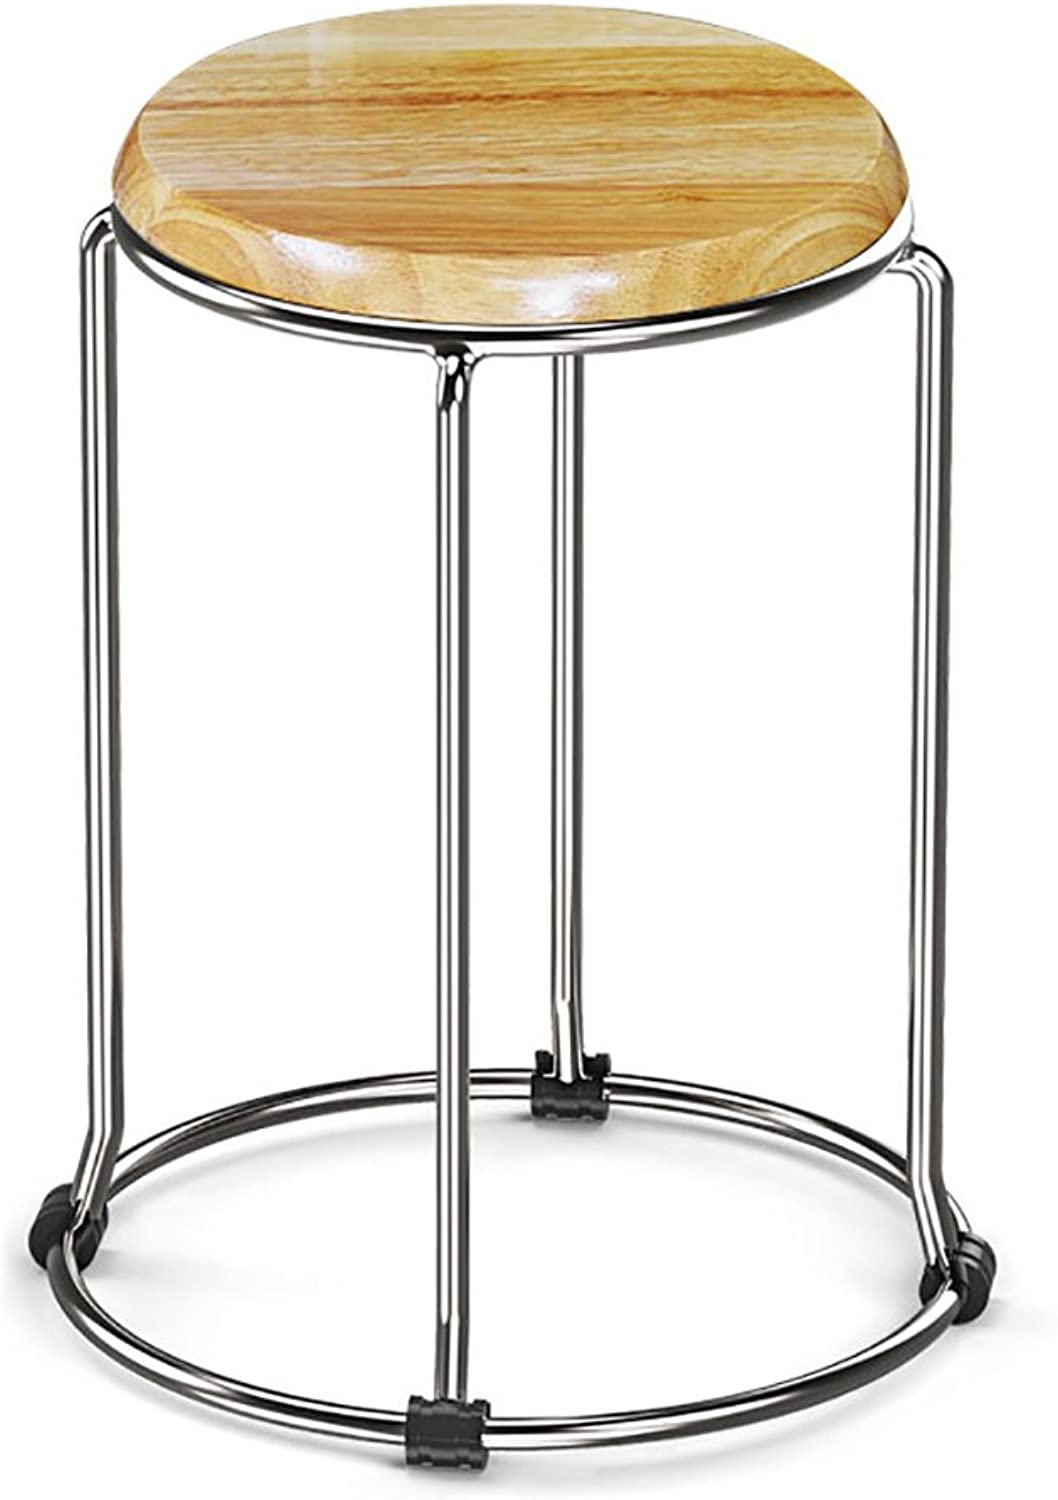 European Chair Fashion Simple Solid Wood Surface Stool Home Metal Table Stool high Stool Wooden Stool Non-Slip